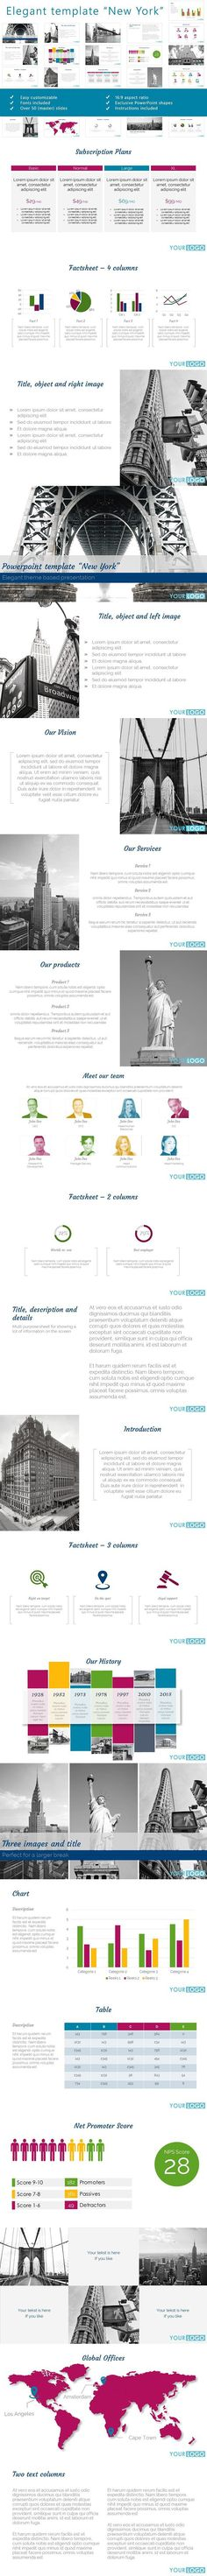 Brended Keynote Template Real Estate Design Pinterest Template